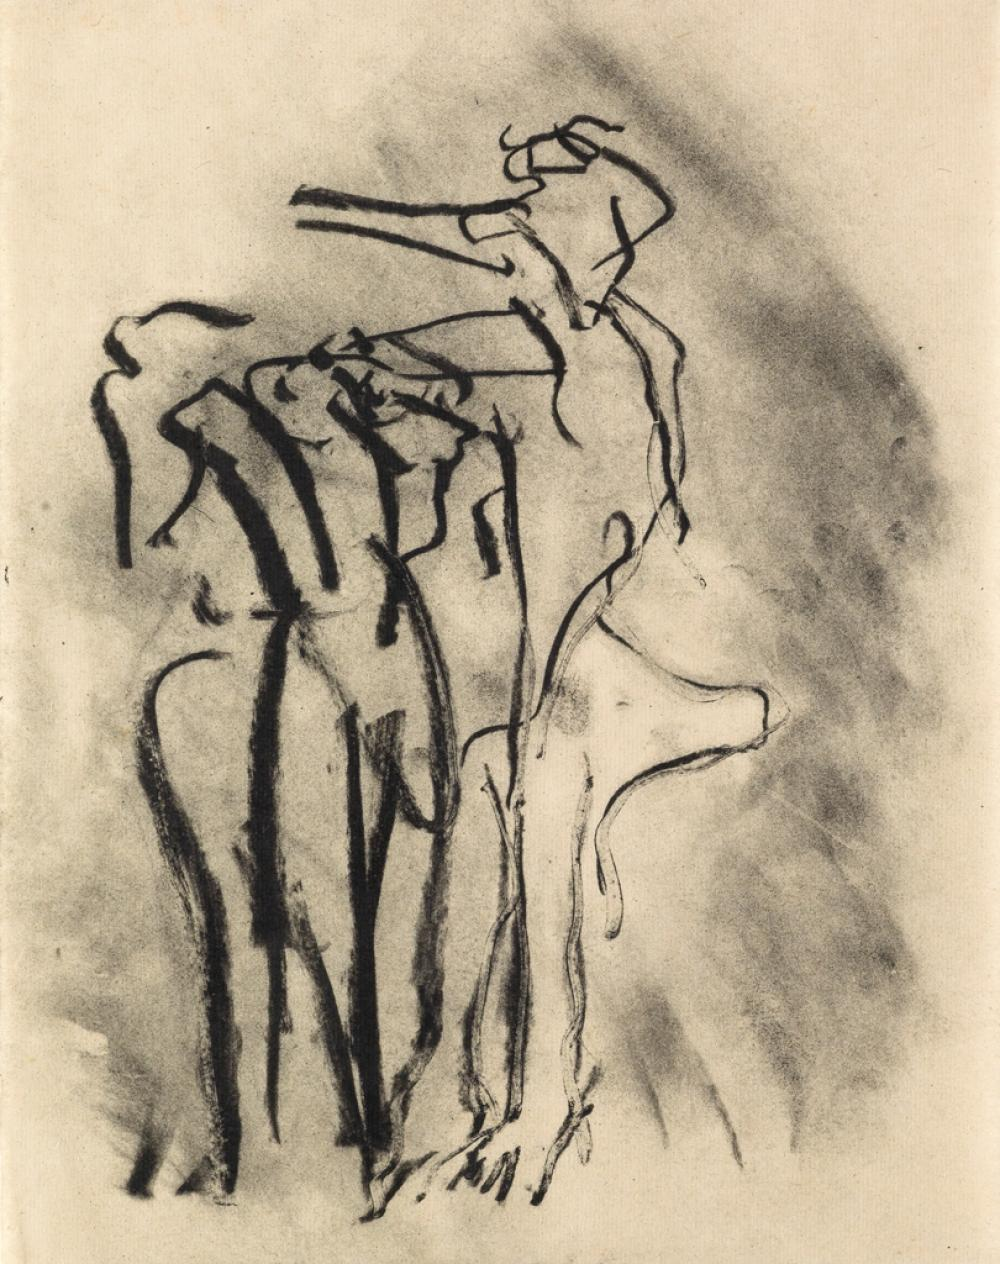 WILLEM DE KOONING Group of 7 lithographs from Poems by Frank